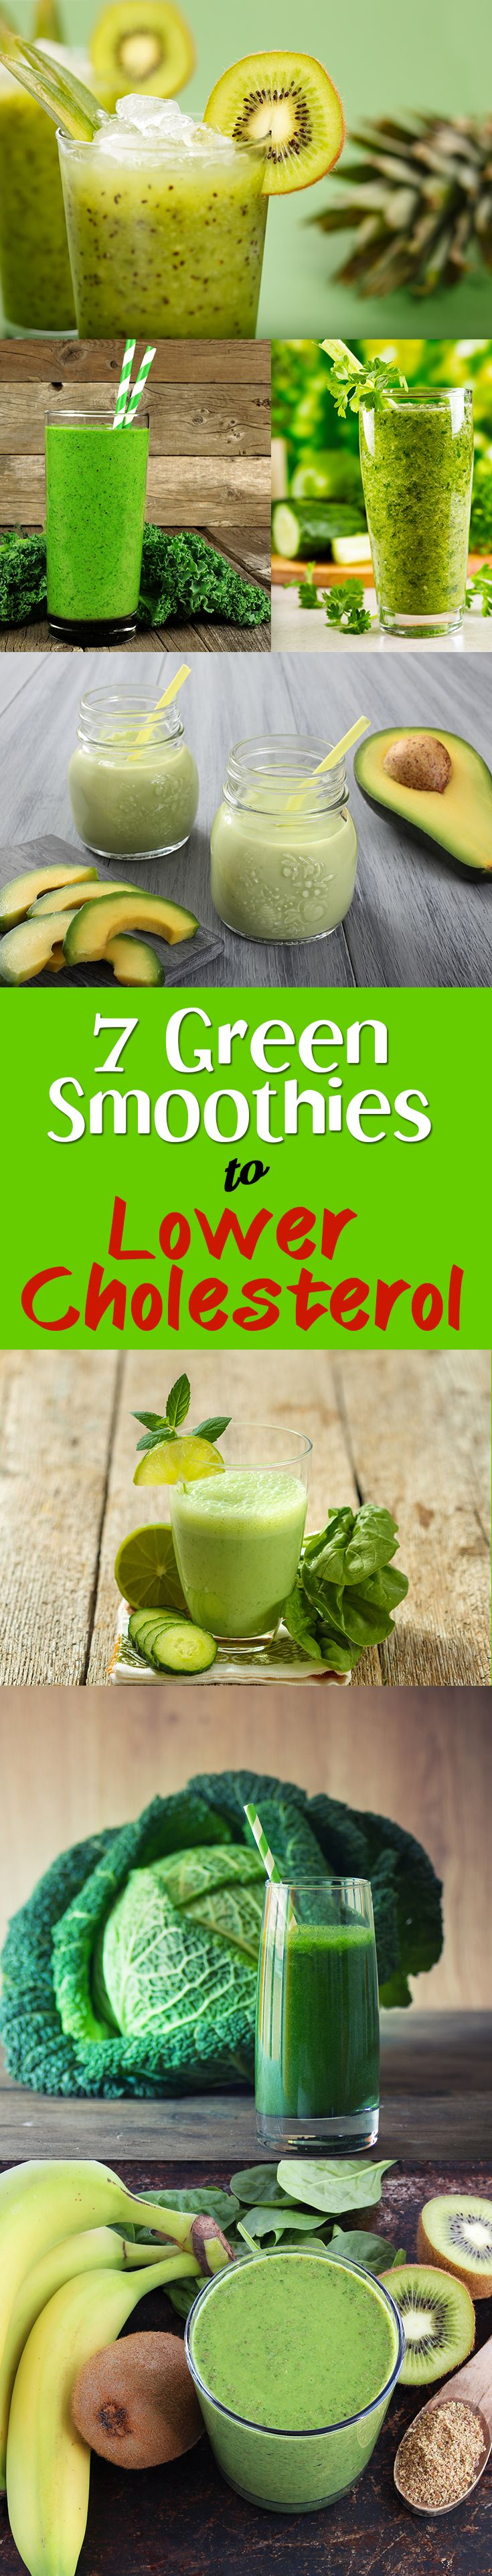 7 green smoothies to lower cholesterol